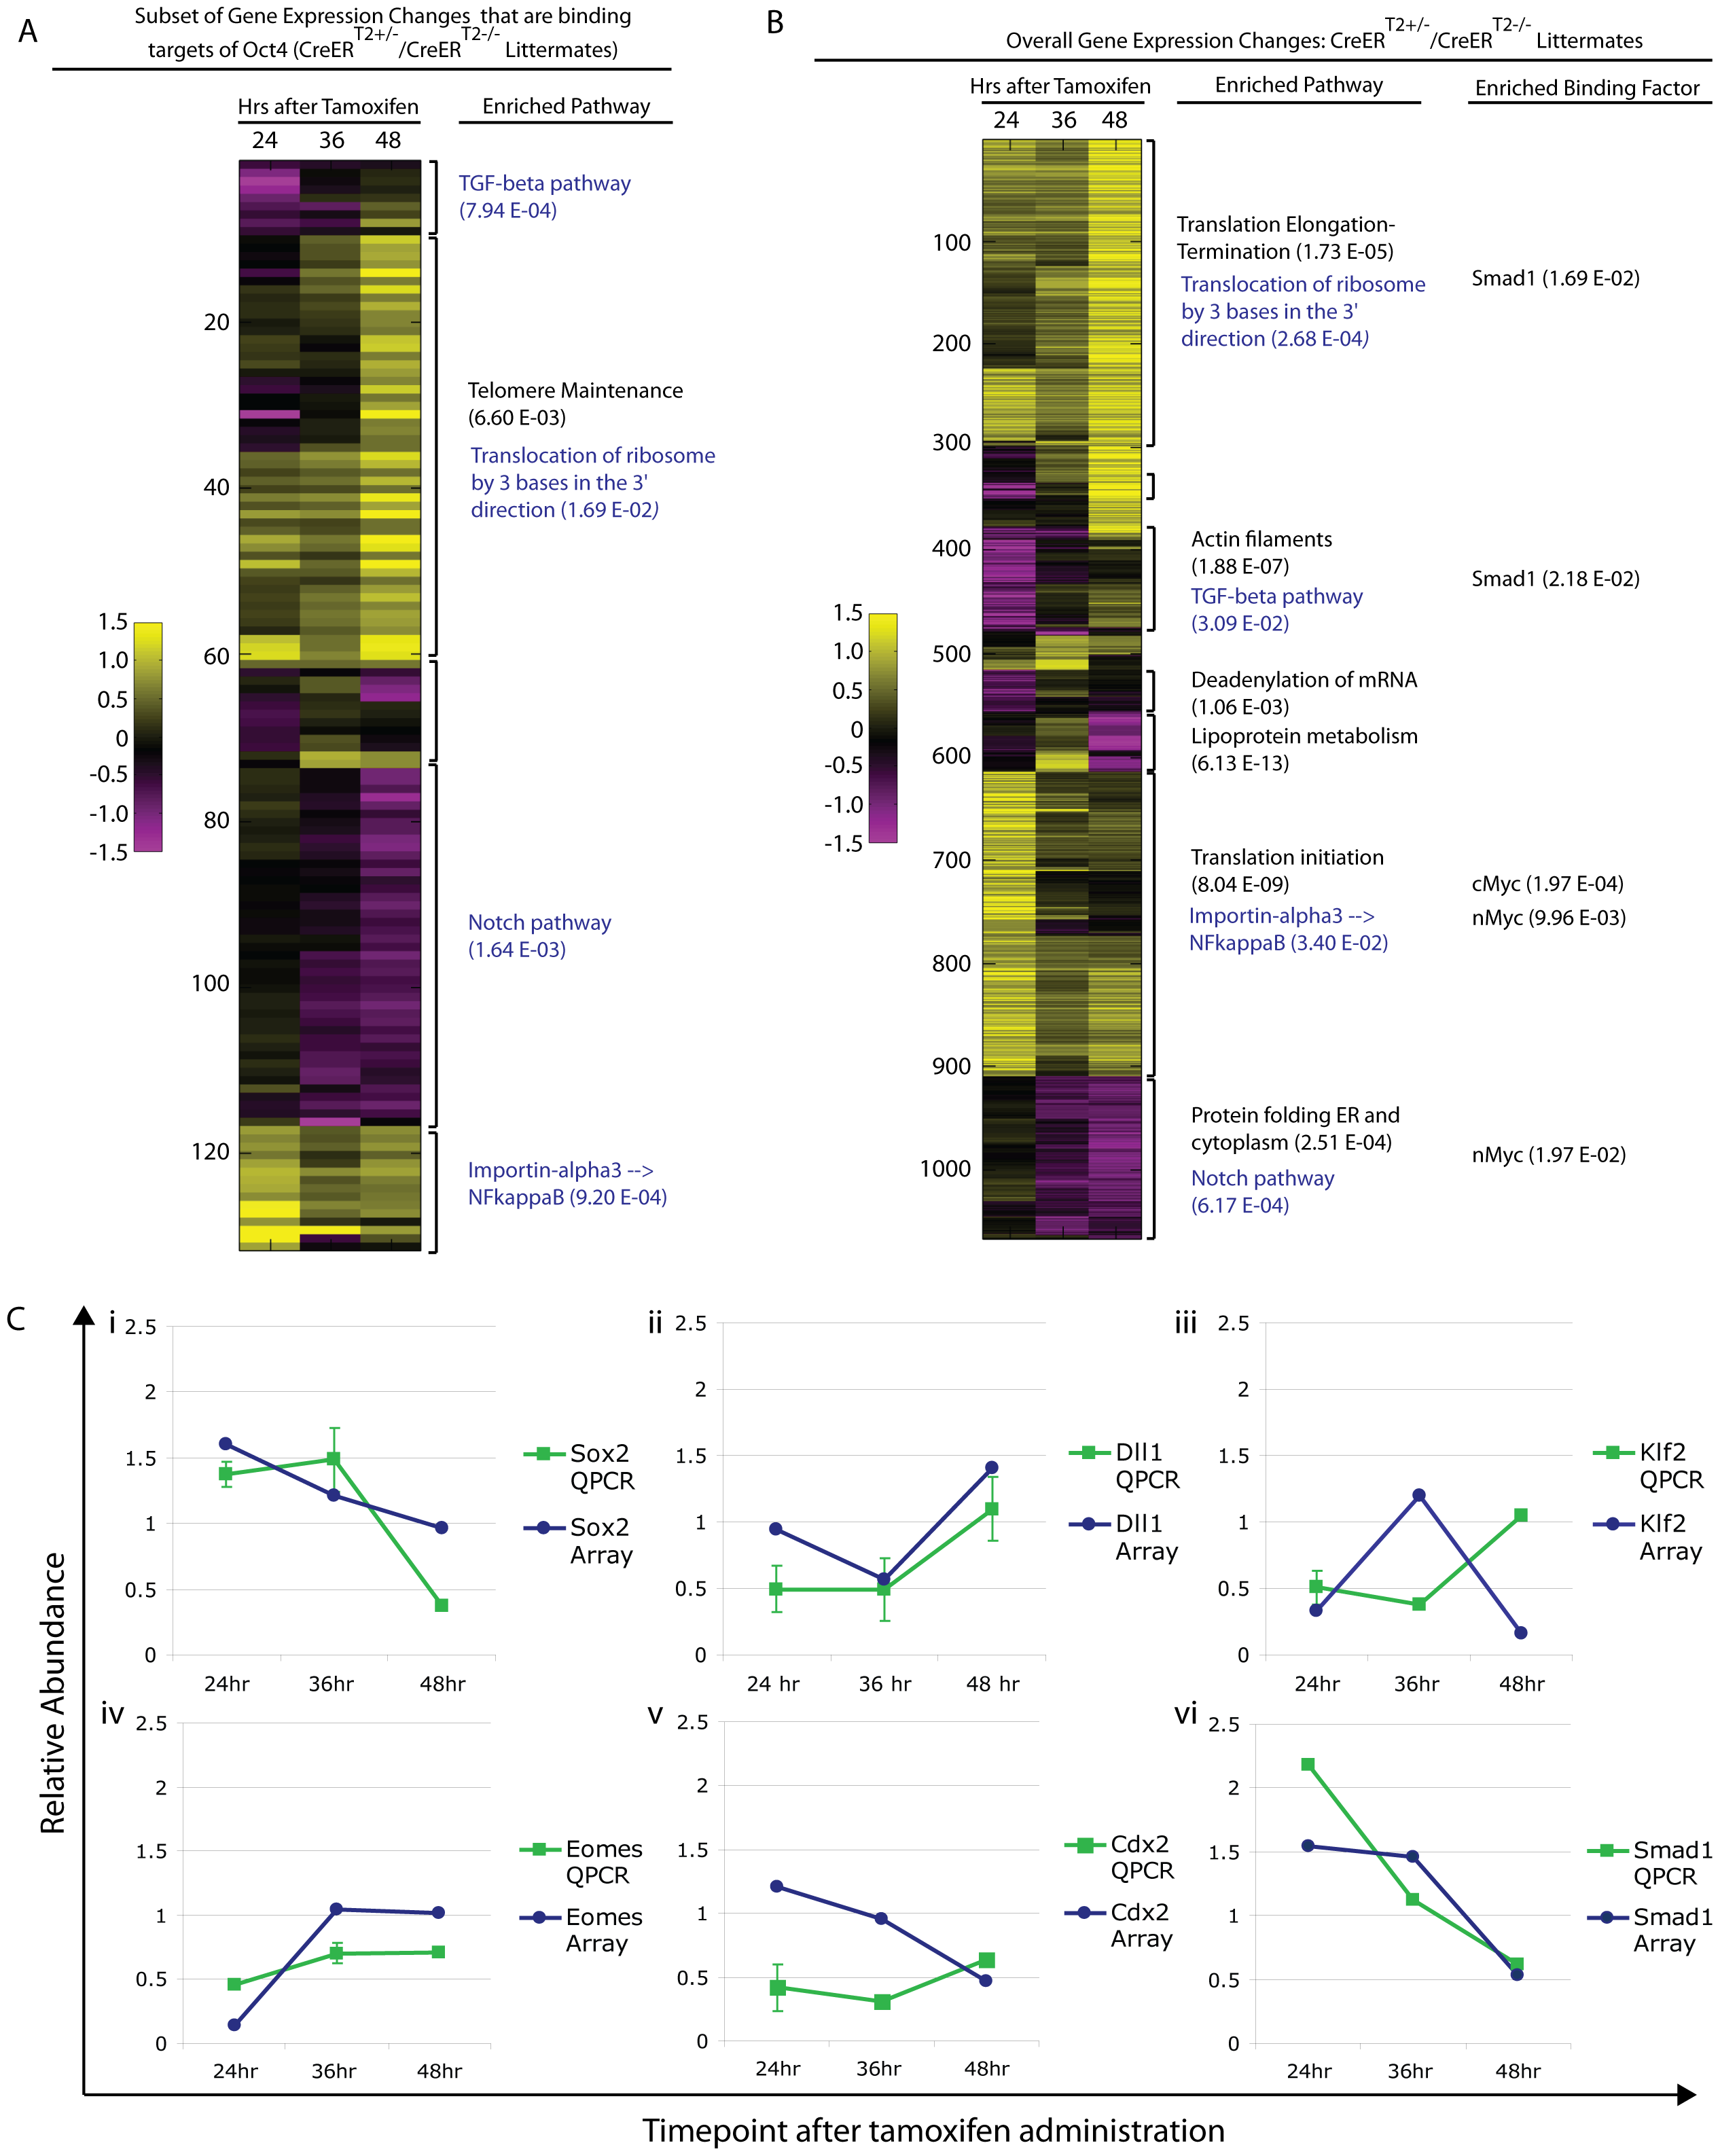 Pathway enrichment and confirmation of a subset of differentially expressed genes following Oct4 depletion.